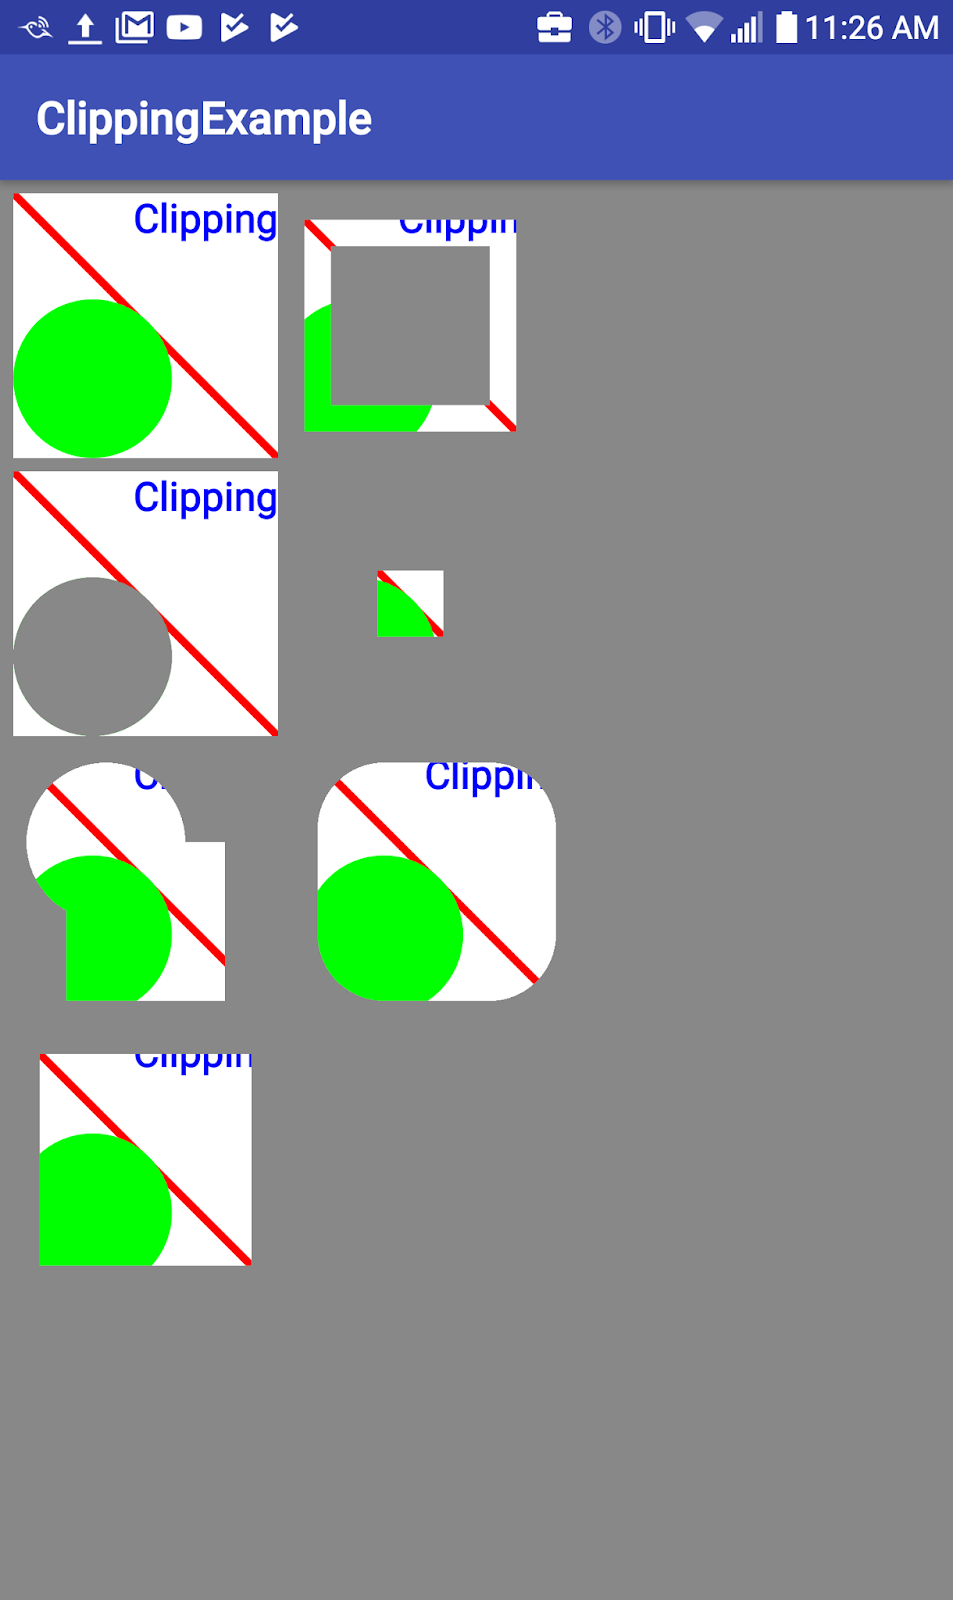 Clipping rectangle for one square